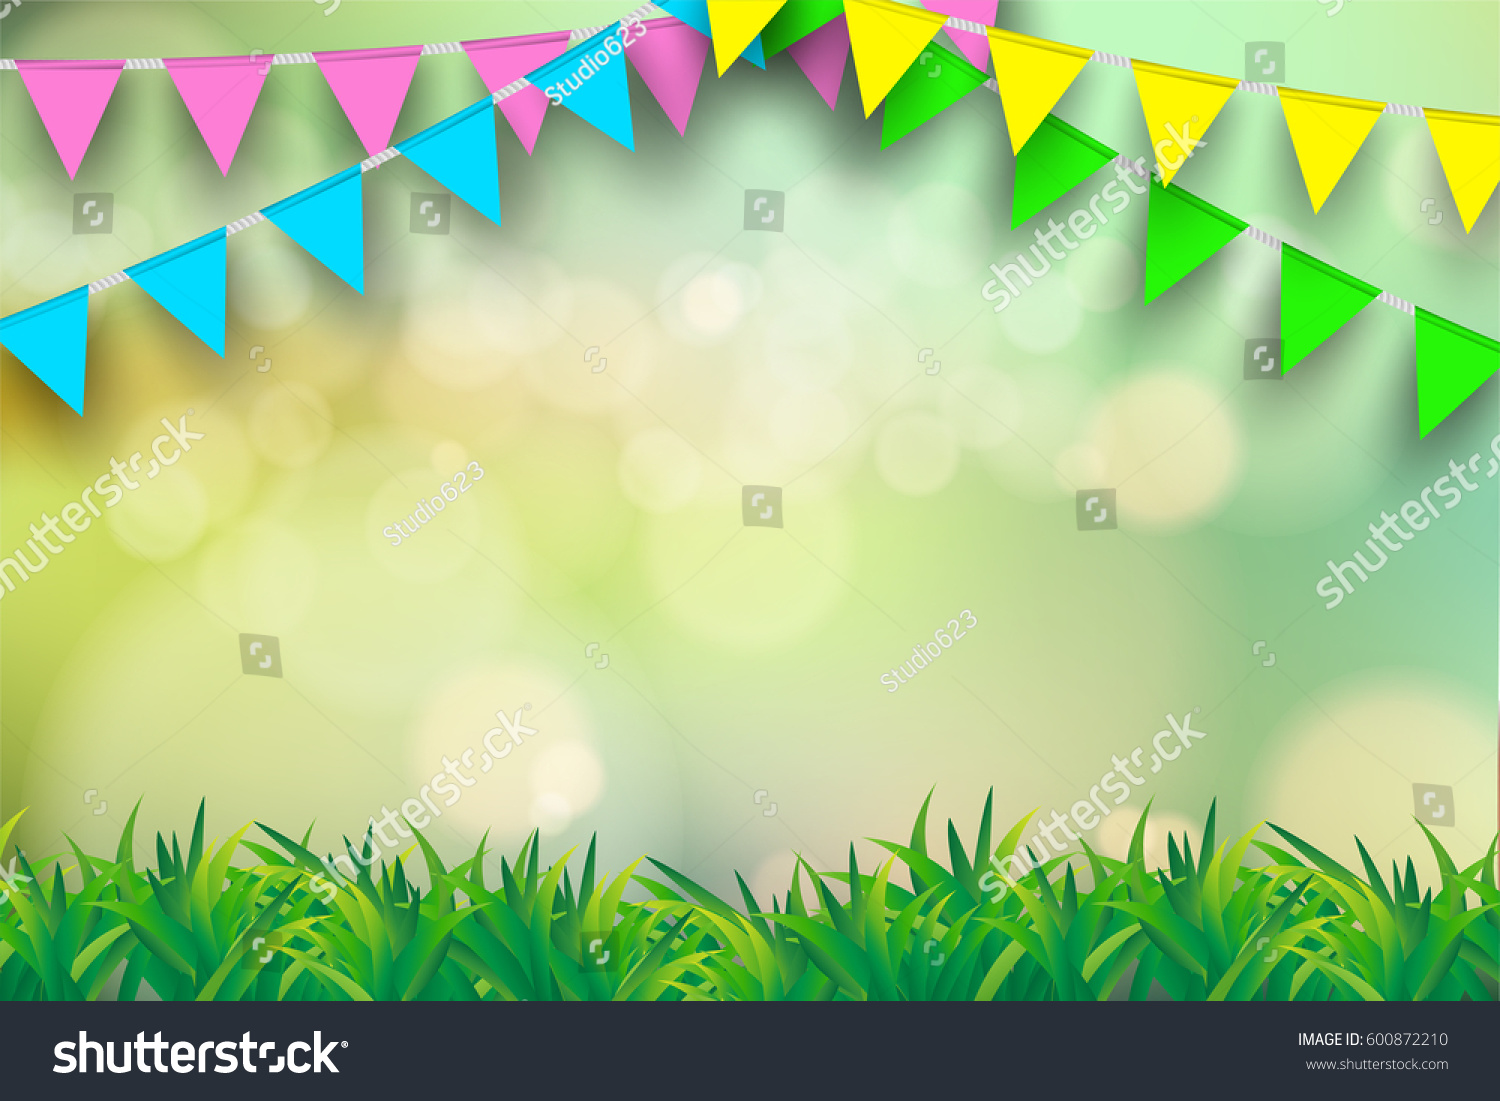 Vector bunting flags lovely celebration card with colorful paper - Bunting Flag On Green Bokeh Backgroundtemplate Stock Vector